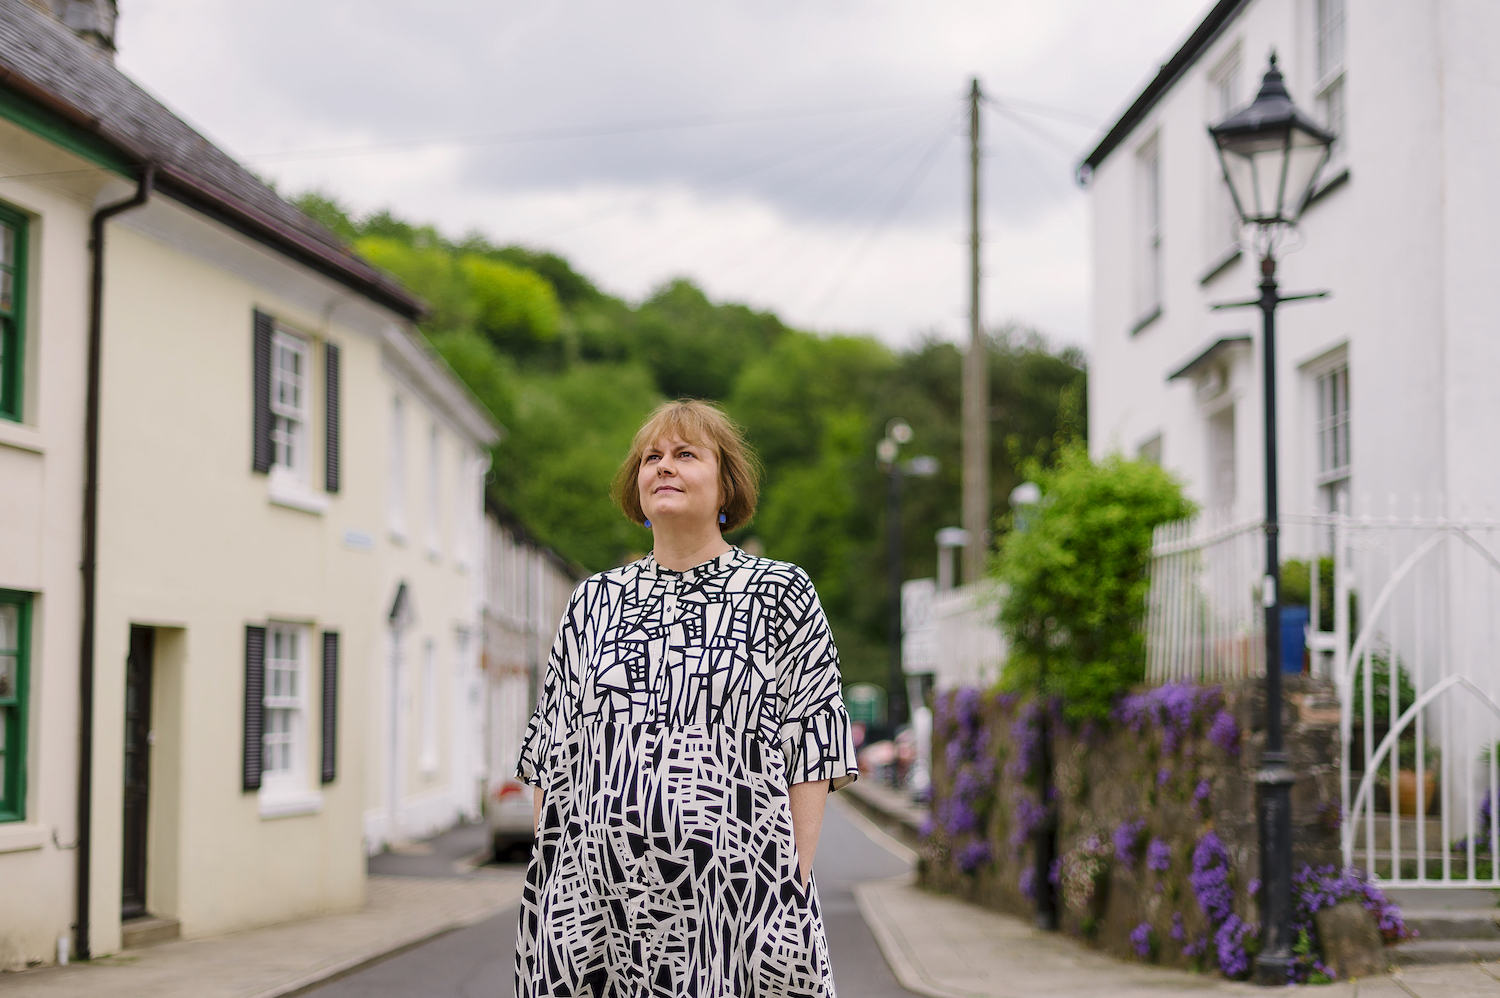 The Devonshire town that transformed local democracy - Positive News